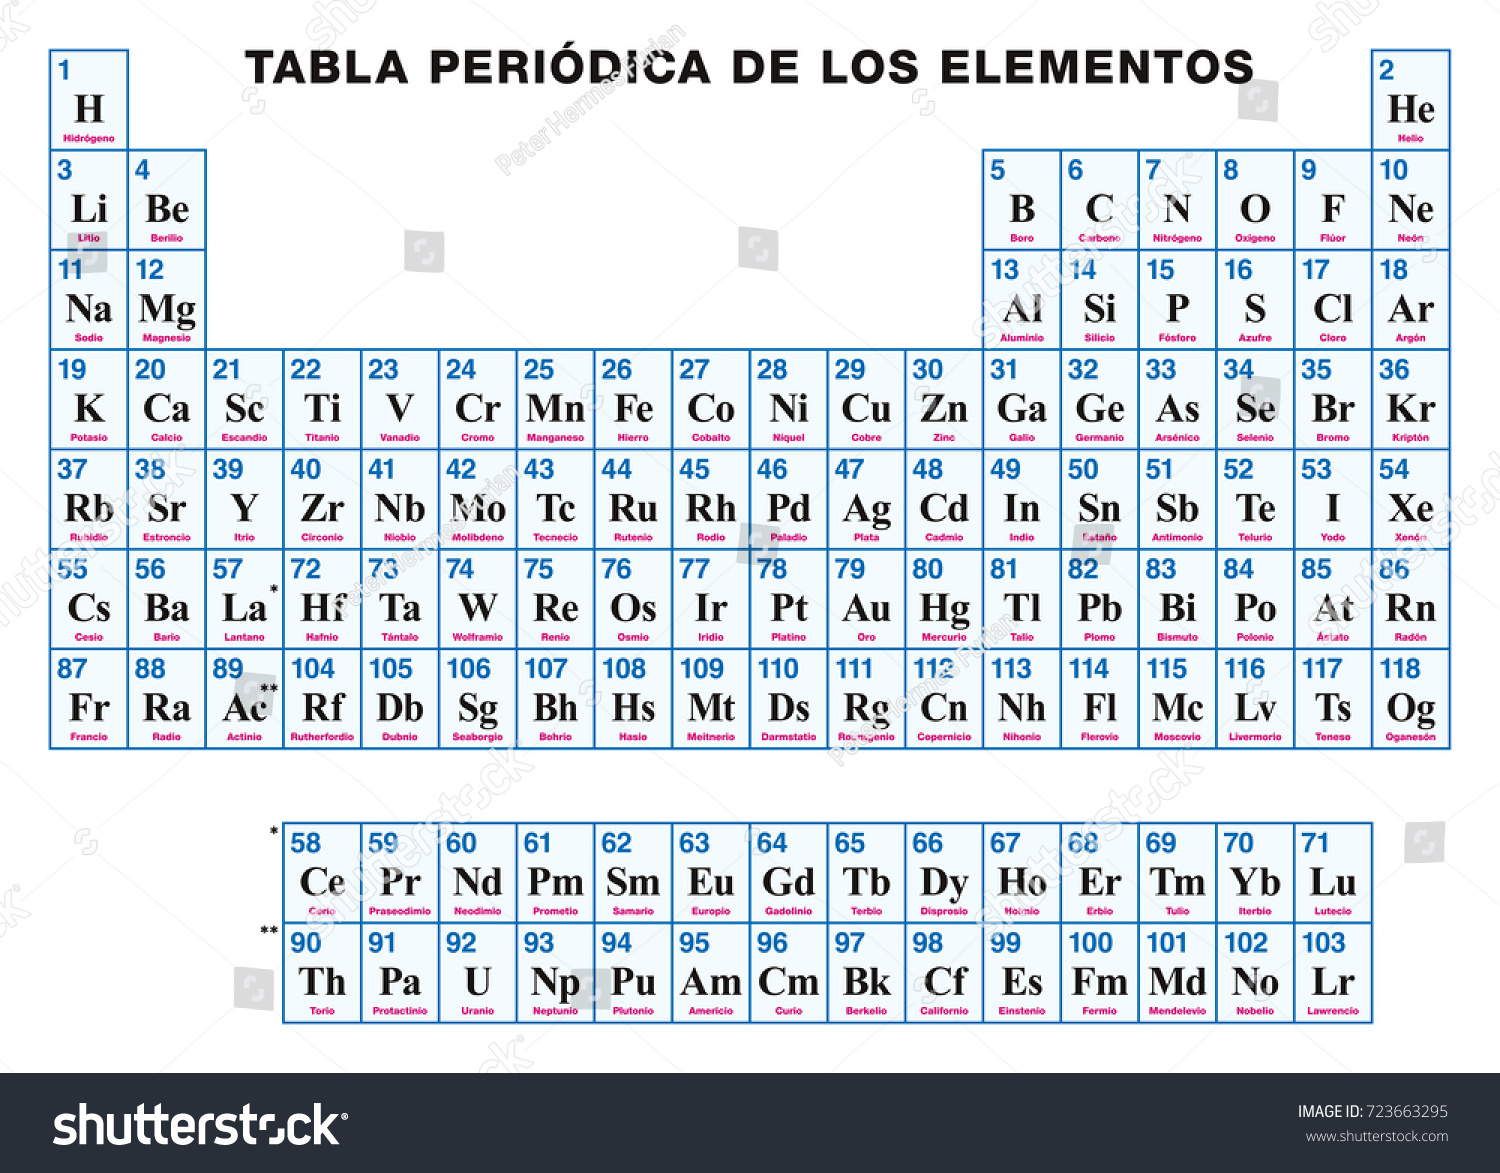 Periodic table elements spanish tabular arrangement stock vector periodic table of the elements spanish tabular arrangement of the chemical elements with their gamestrikefo Gallery